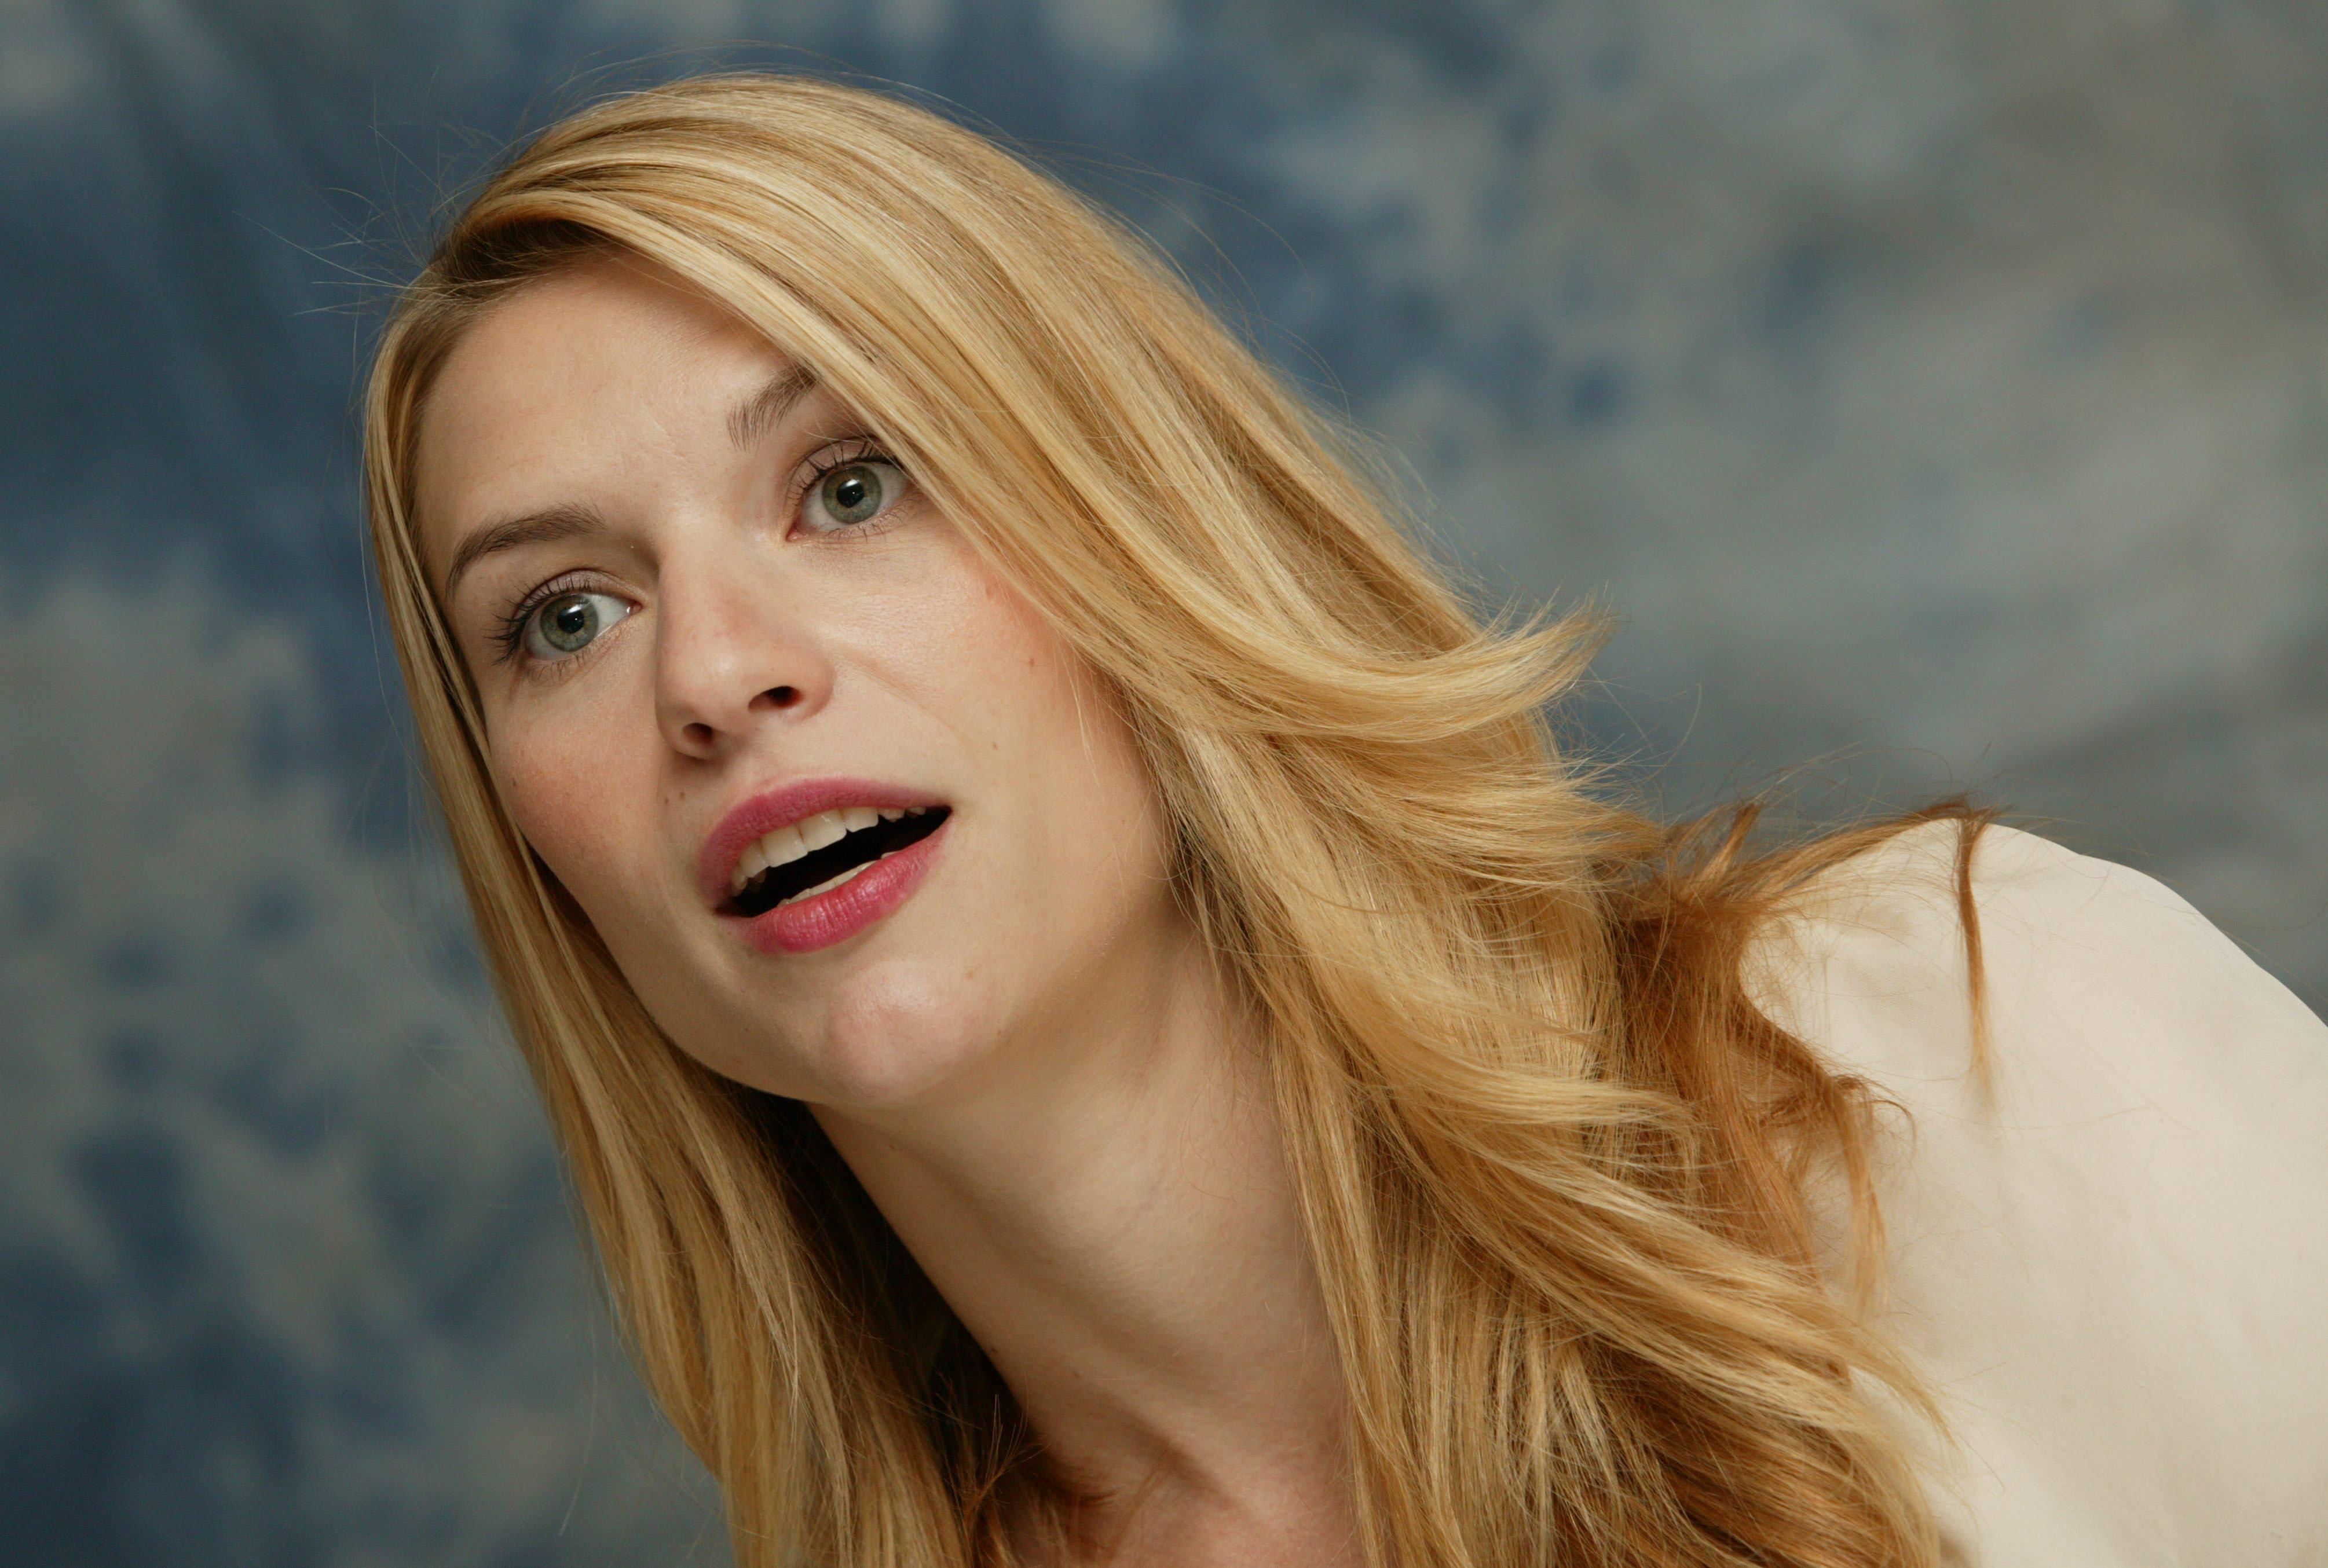 4020x2708 - Claire Danes Wallpapers 9